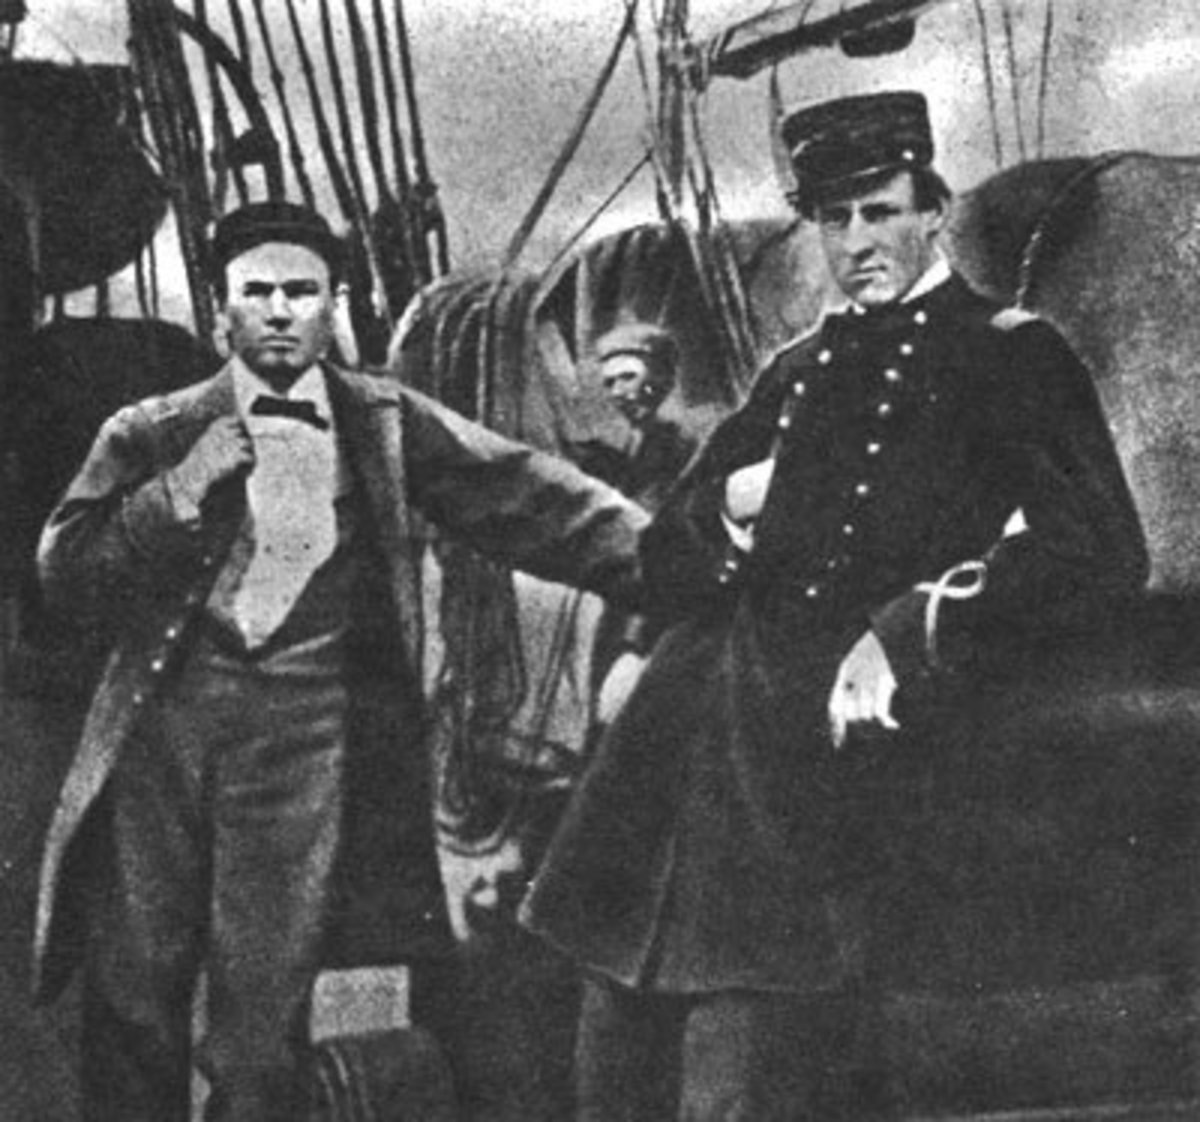 Admiral Raphael Semmes was a Hidden Hand Satanist, a traitor to a free United States.